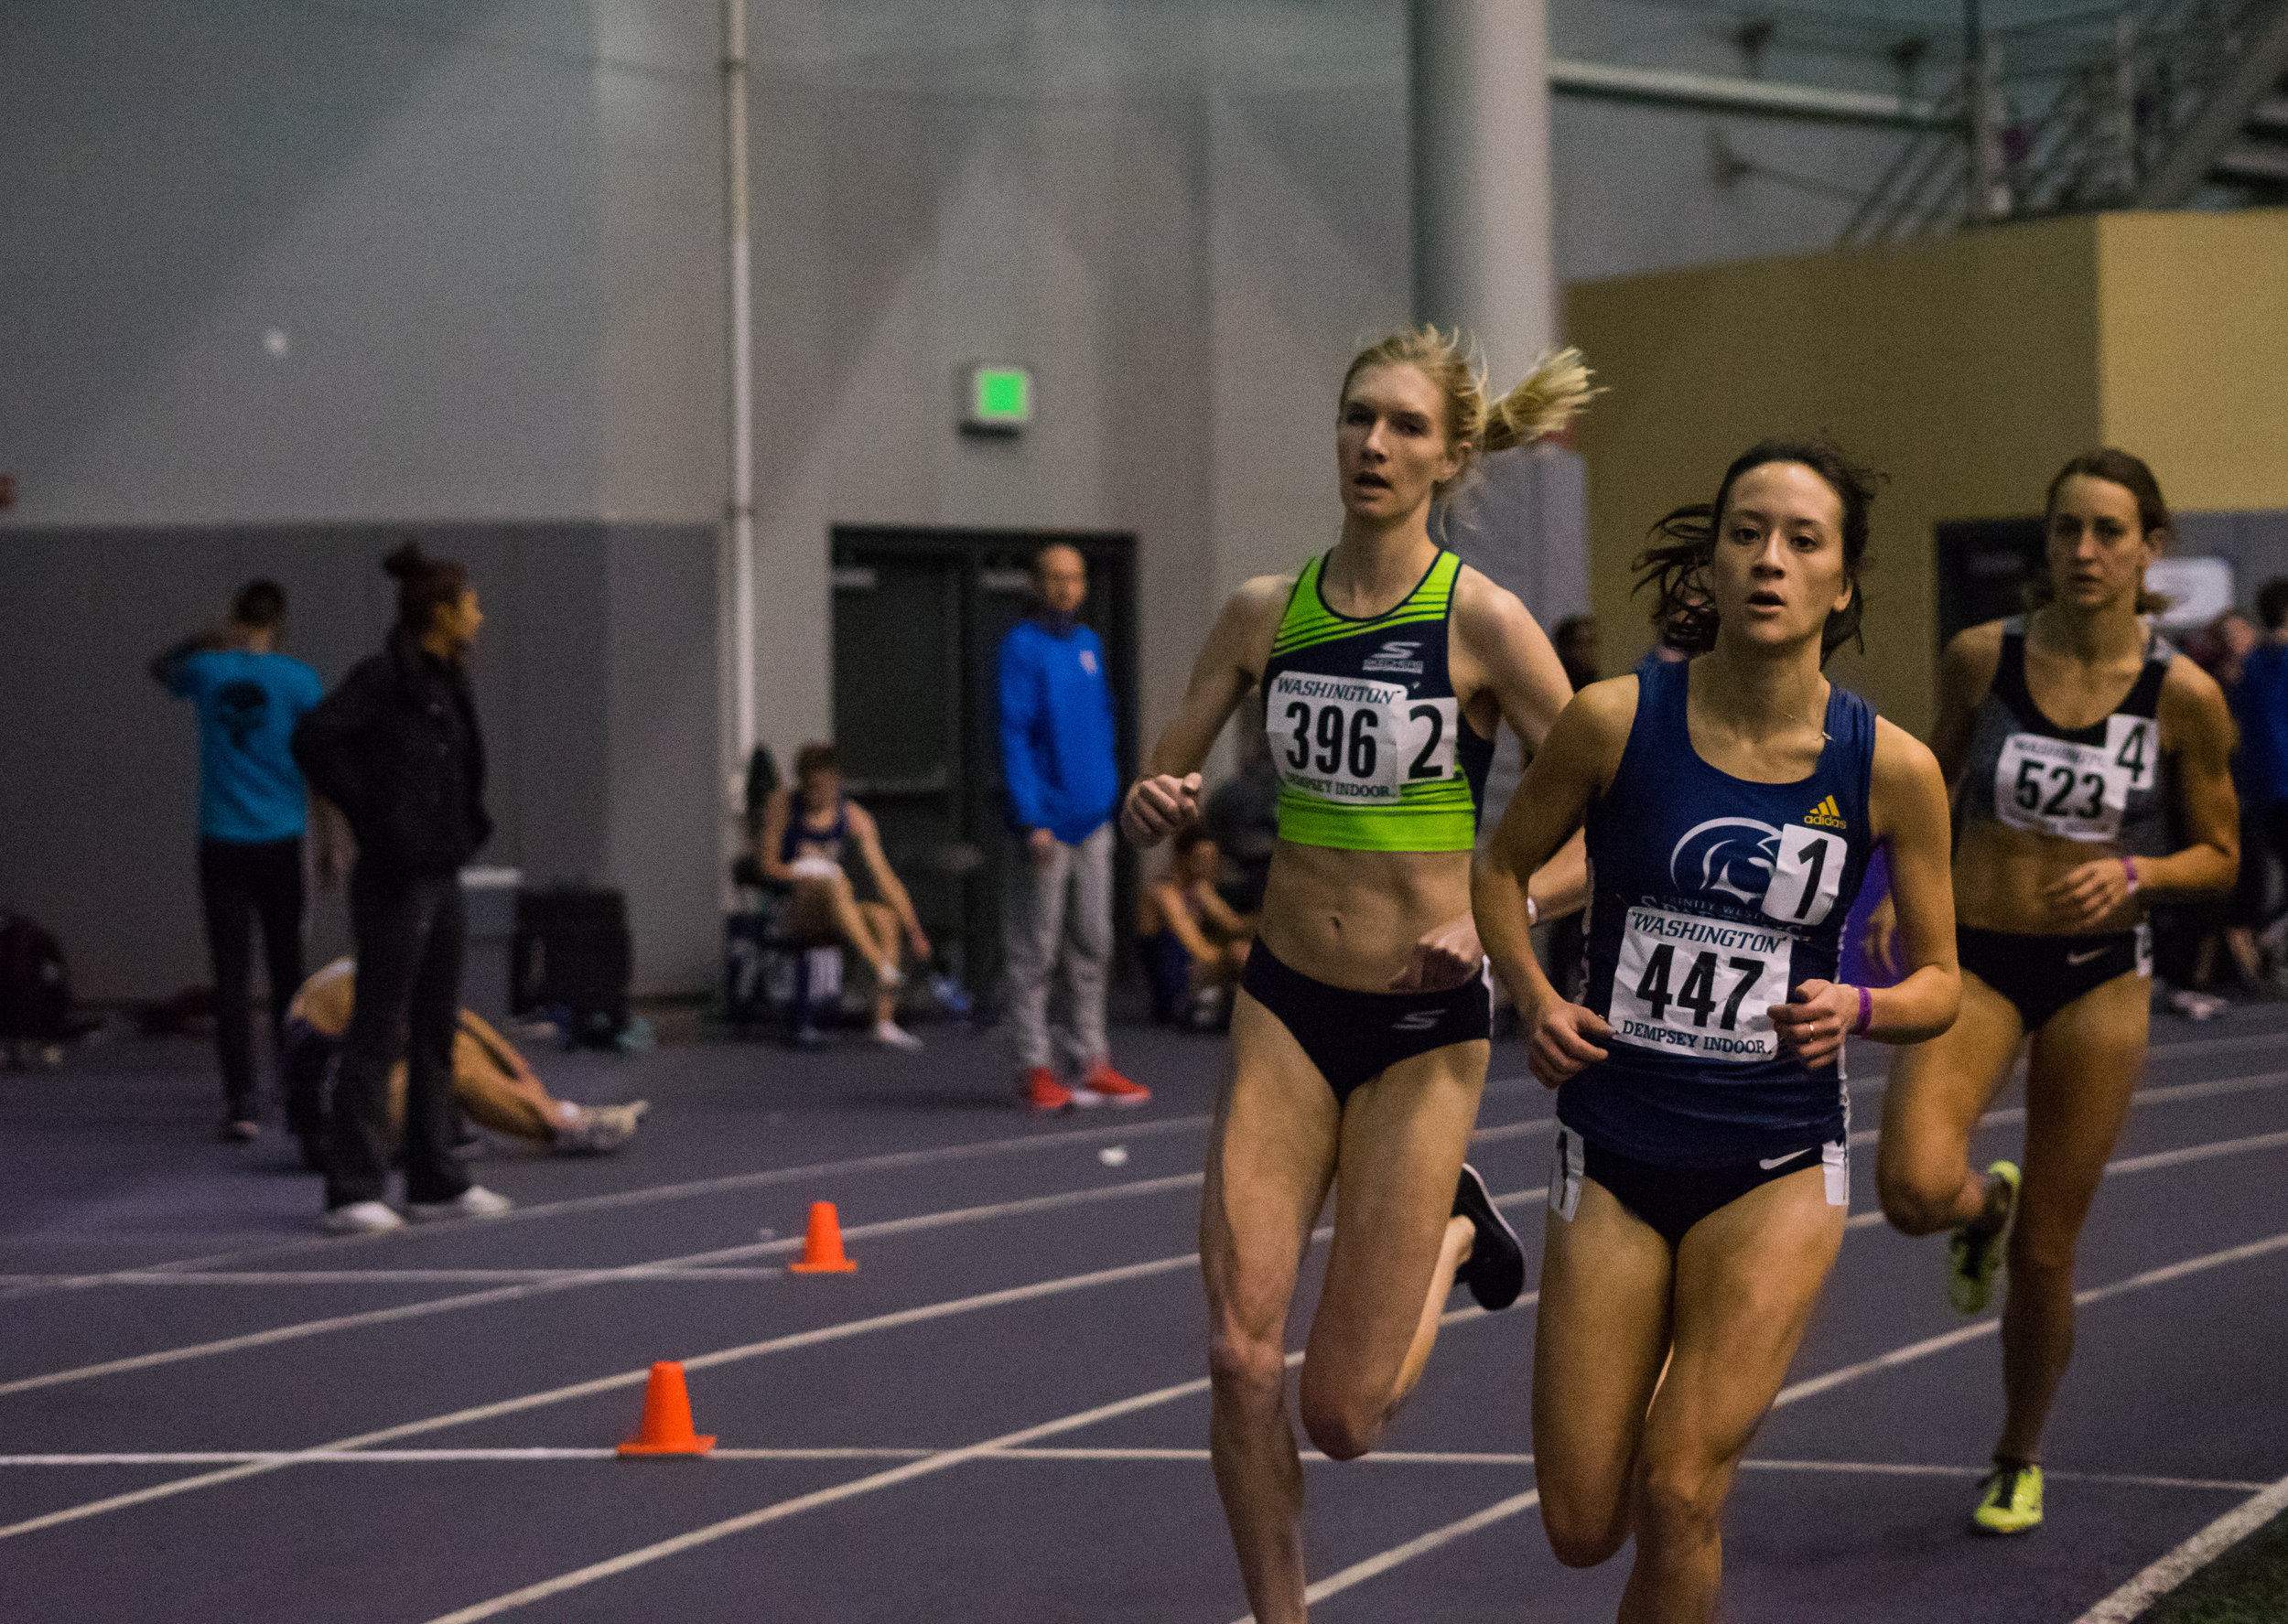 HPW Elite miler, Eleanor Fulton (#396), pictured racing her way to a personal best of 4:34 for the indoor 1 mile during the 2018 season.